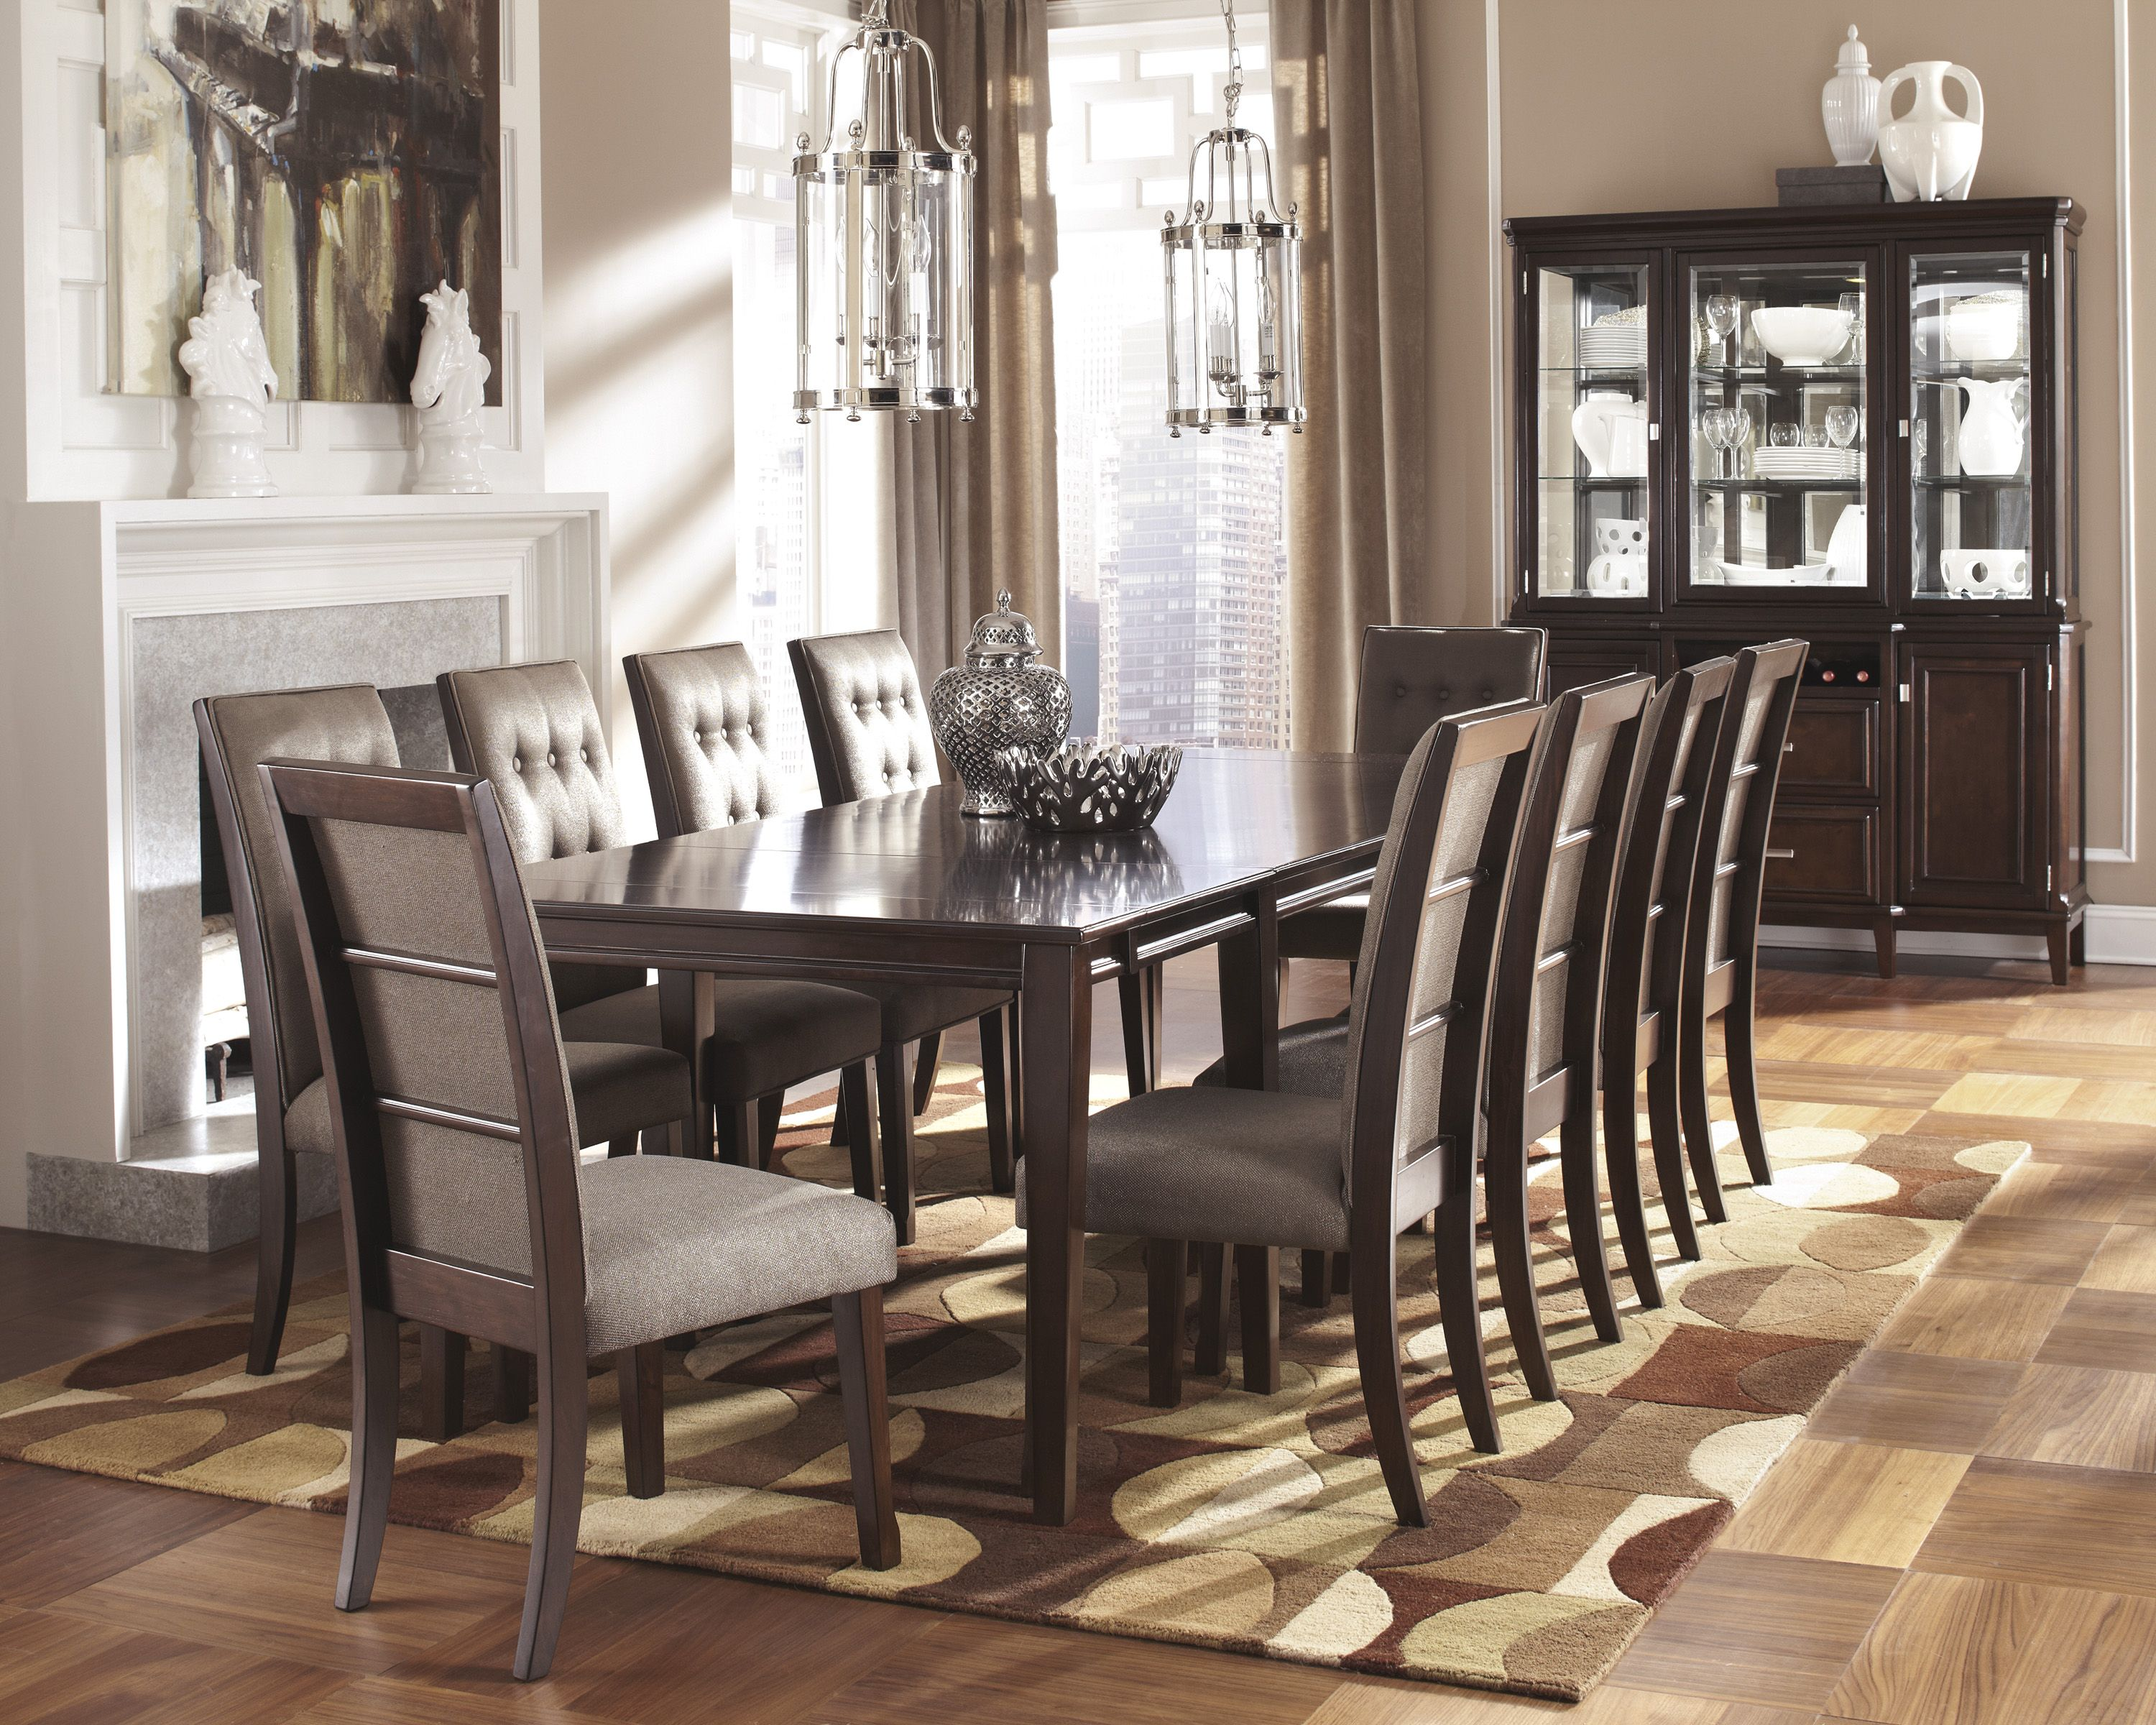 Unique dining room from midas pin repin diningroom for Unique dining room ideas